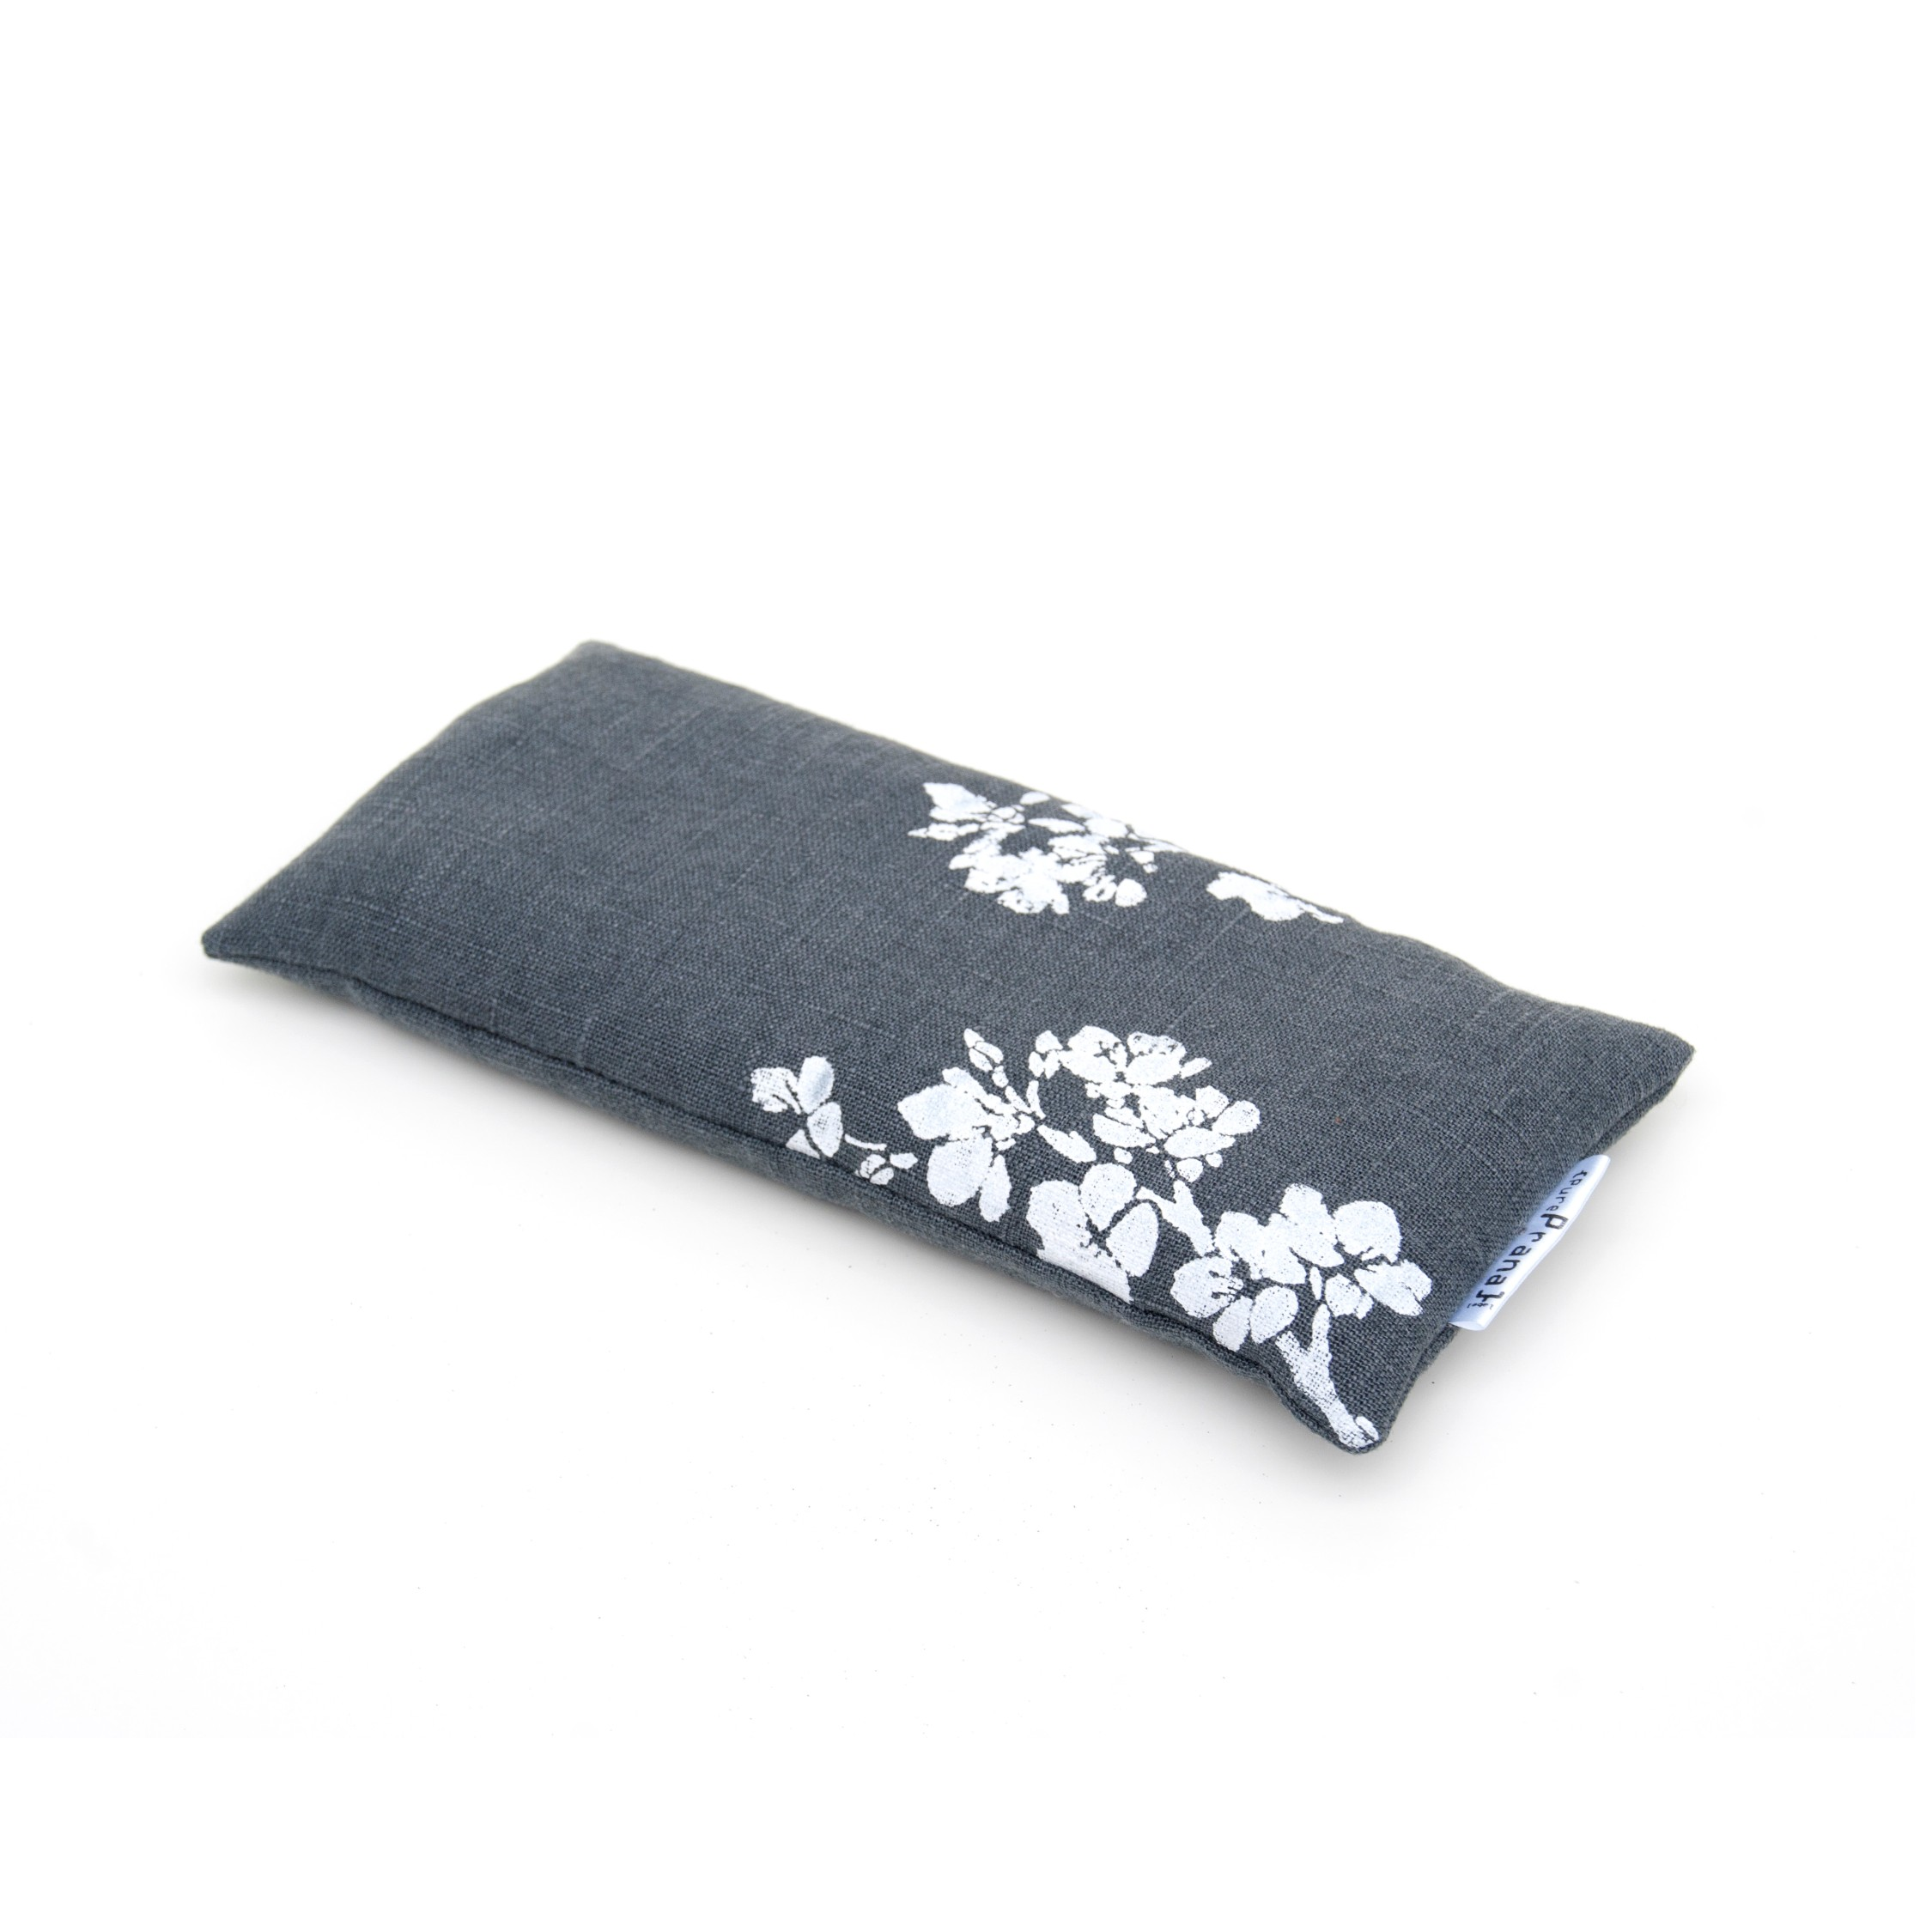 Lavender eye pillow Cherry blossom